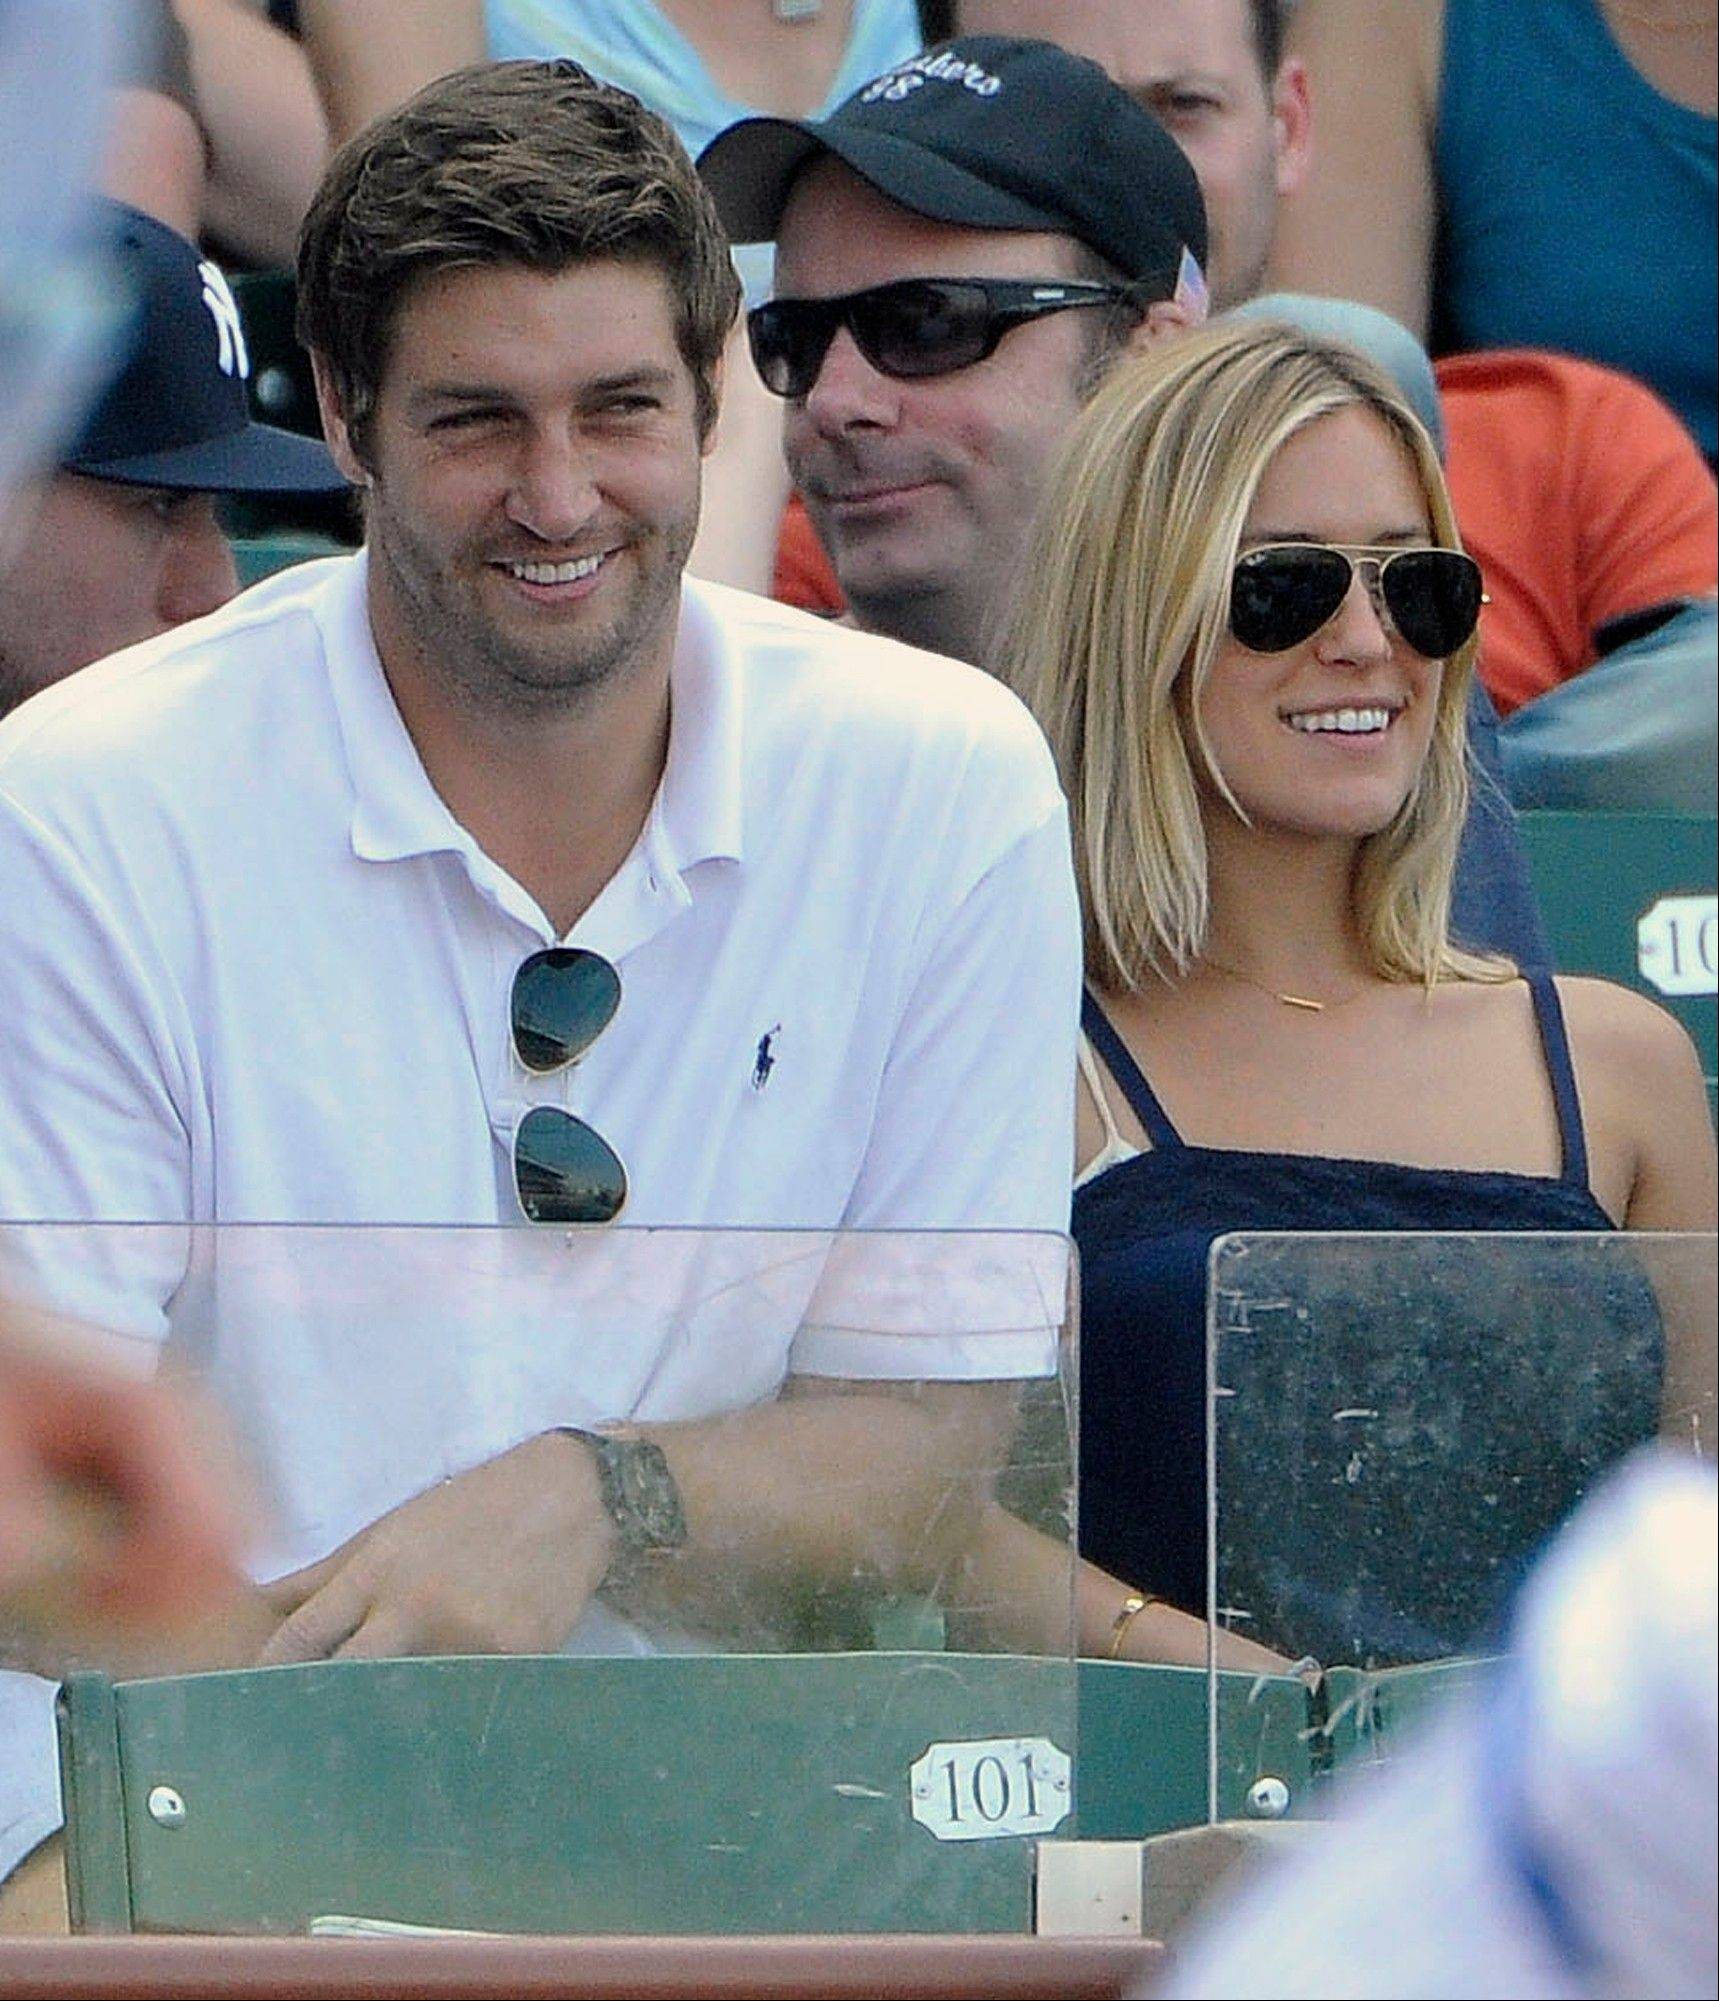 FILE - In this July 2, 2011, file photo, Chicago Bears quarterback Jay Cutler, center, and Kristin Cavallari watch the Chicago Cubs play the Chicago White Sox during an interleague baseball game in Chicago. Cutler and Cavallari are engaged again. The reality TV star announced the engagement Wednesday, Nov. 30, 2011, on her Twitter feed, saying: �This time its official..Jay and I are engaged again :).� (AP Photo/Brian Kersey, File)